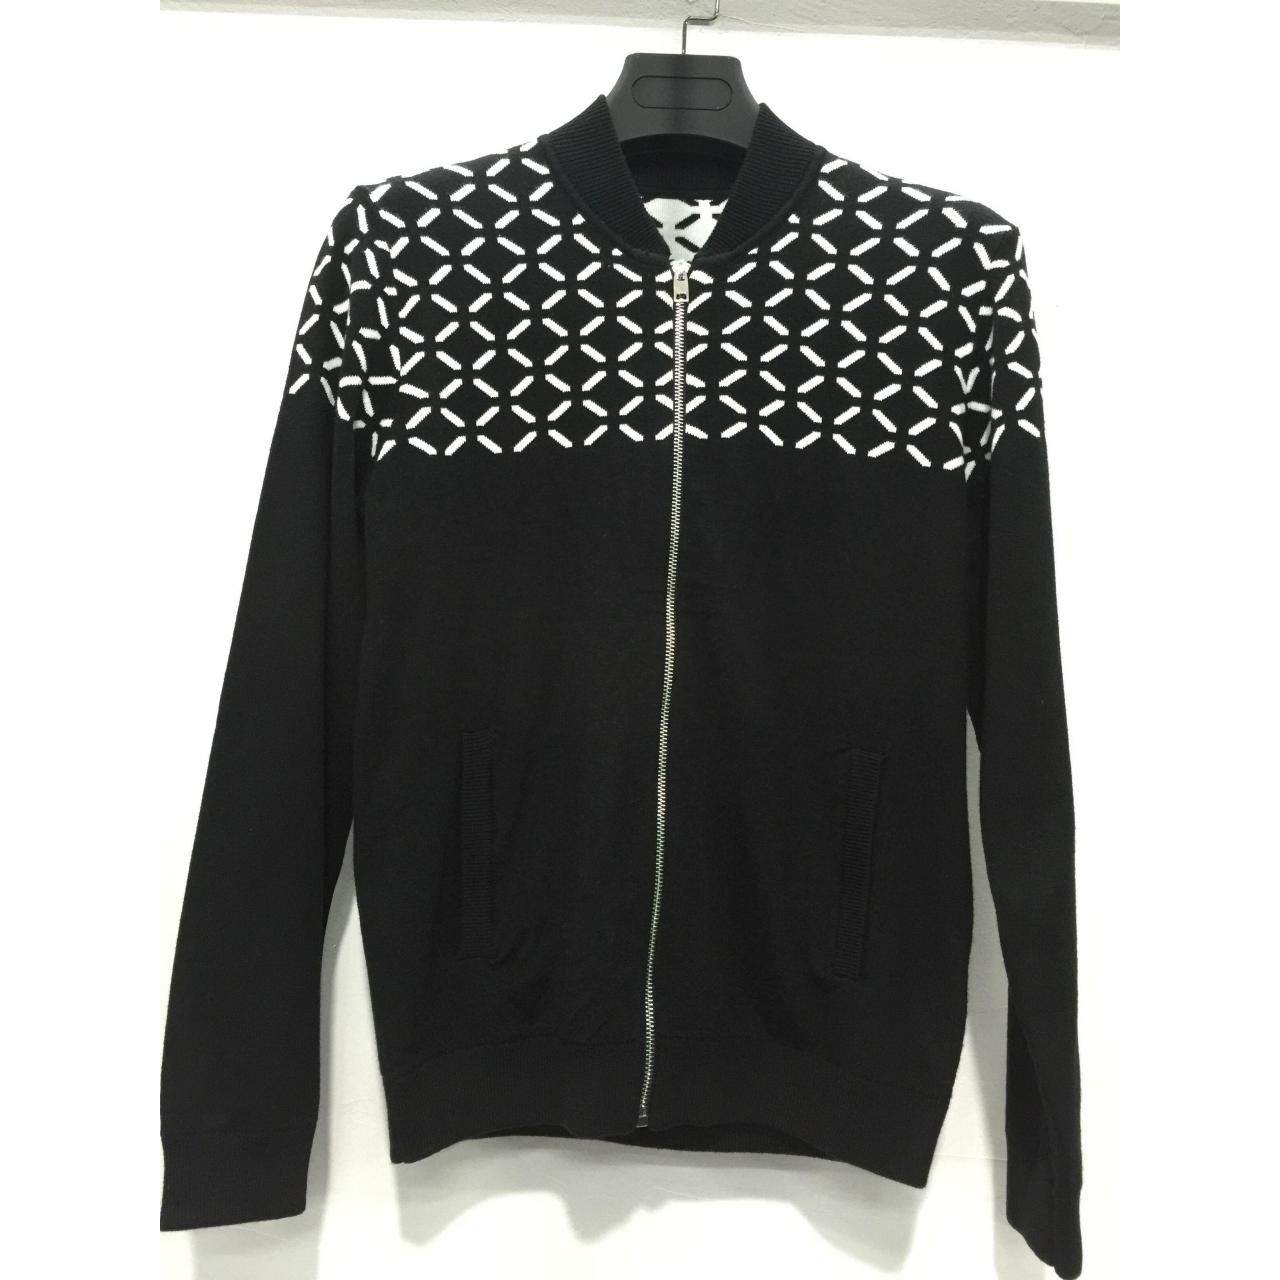 Quality High quality mens jacquard pattern black winter cardigan sweater for sale